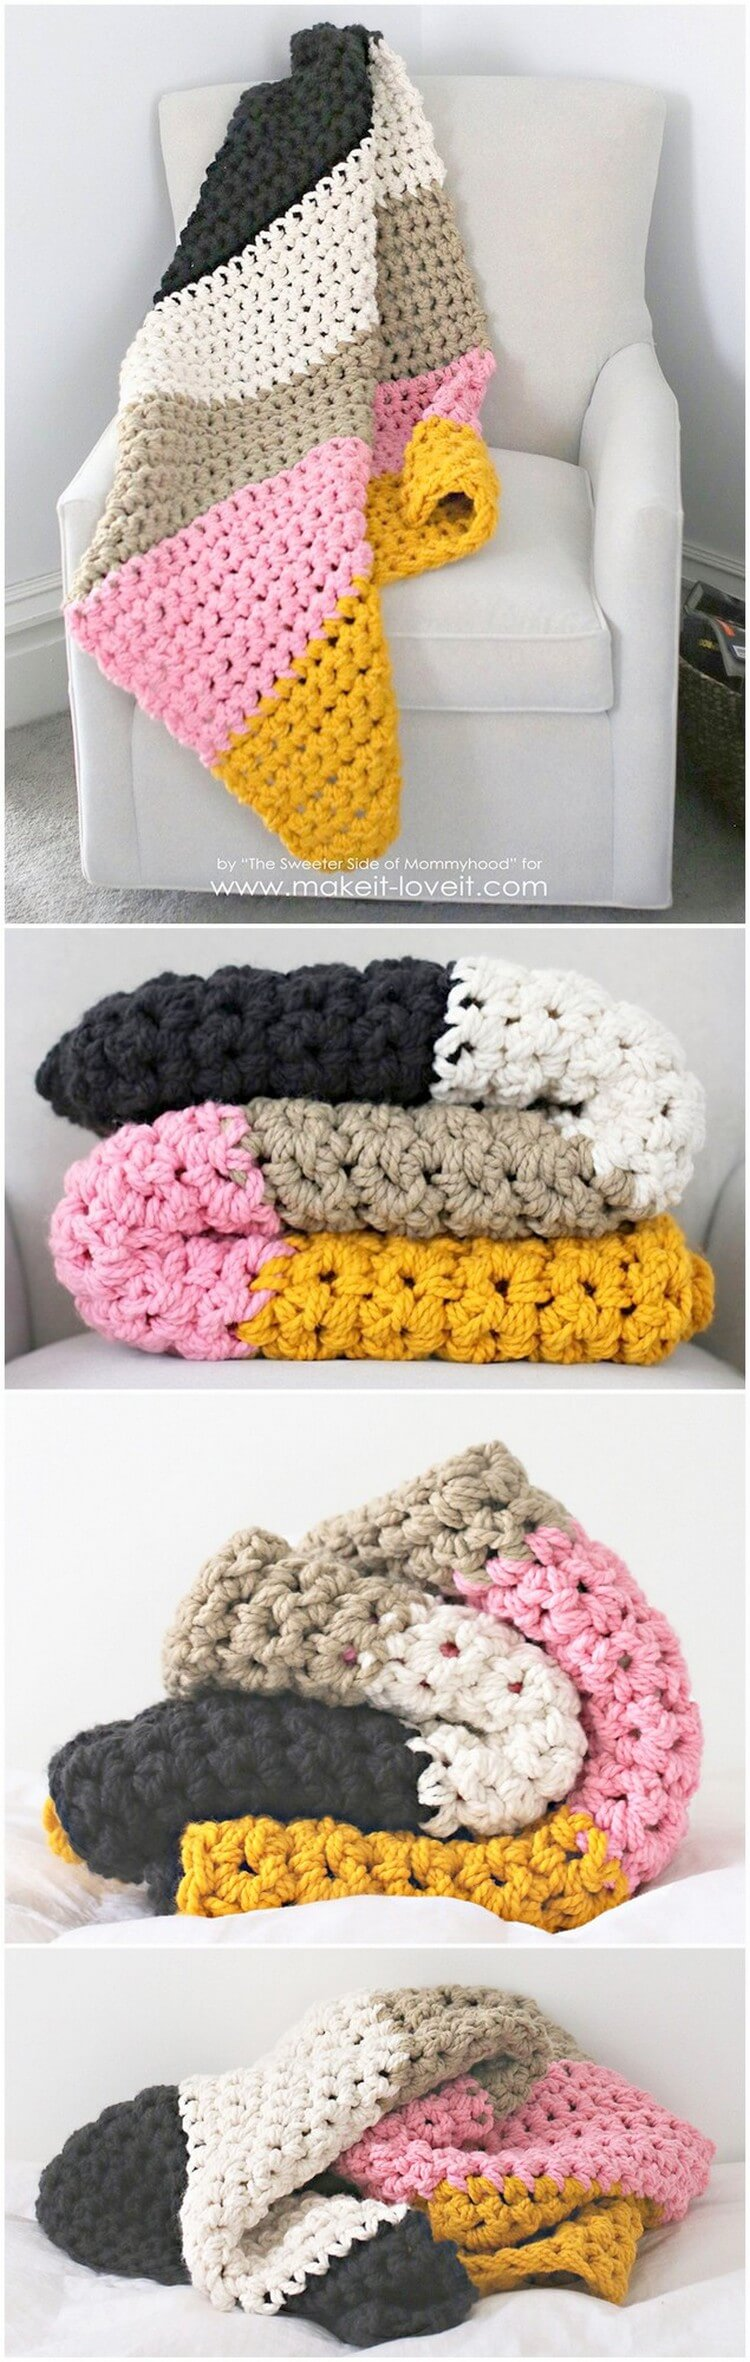 Crochet Blanket Pattern (5)